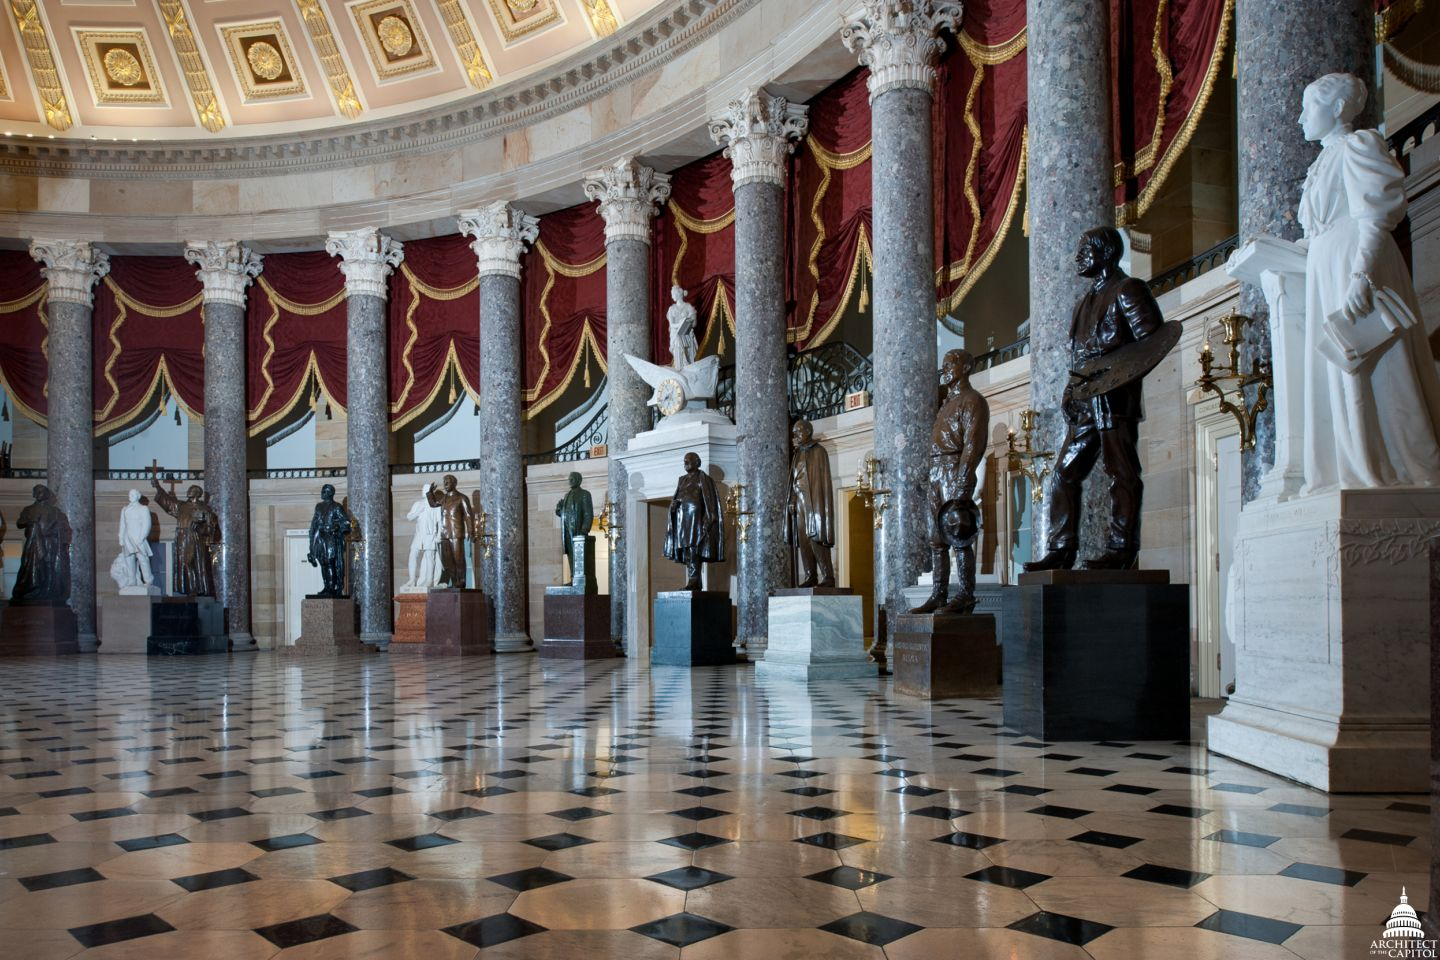 The US Capitol Art Collection